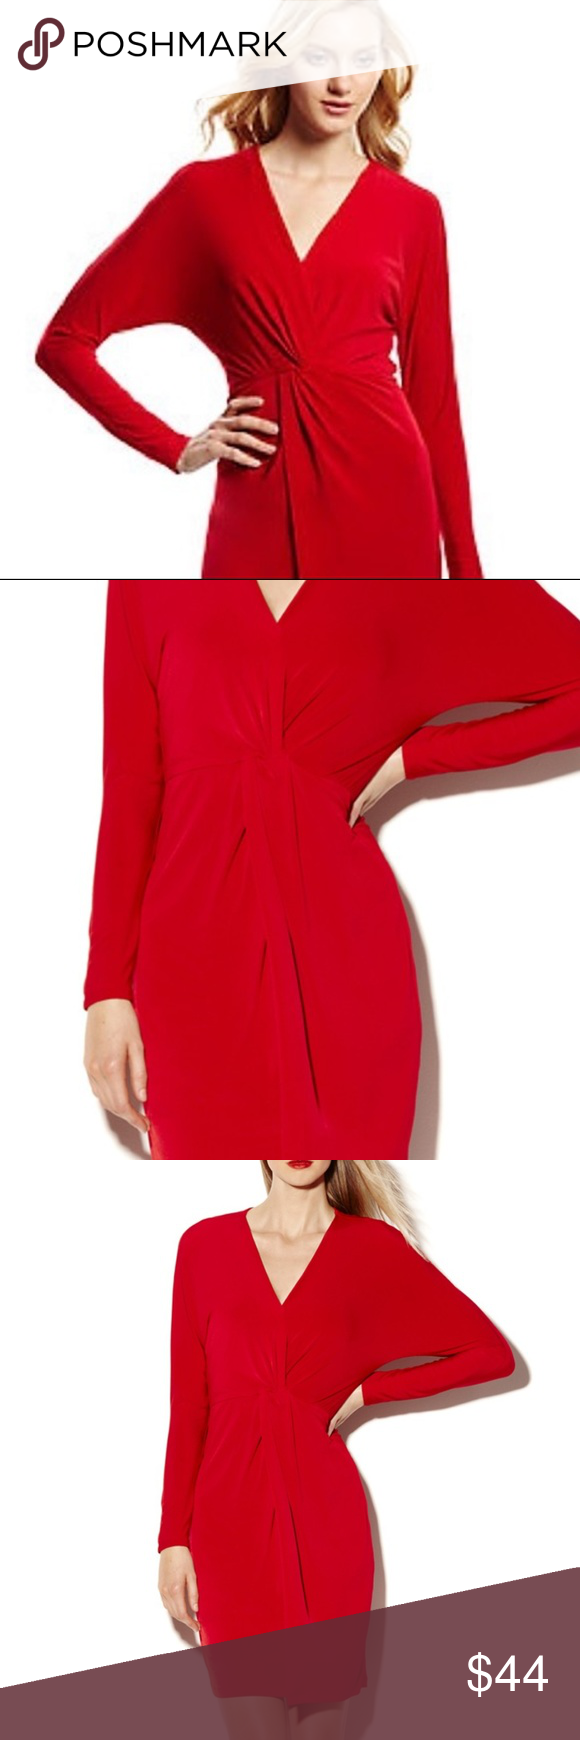 Vince camuto red gathered knot waist dress nwt detail design